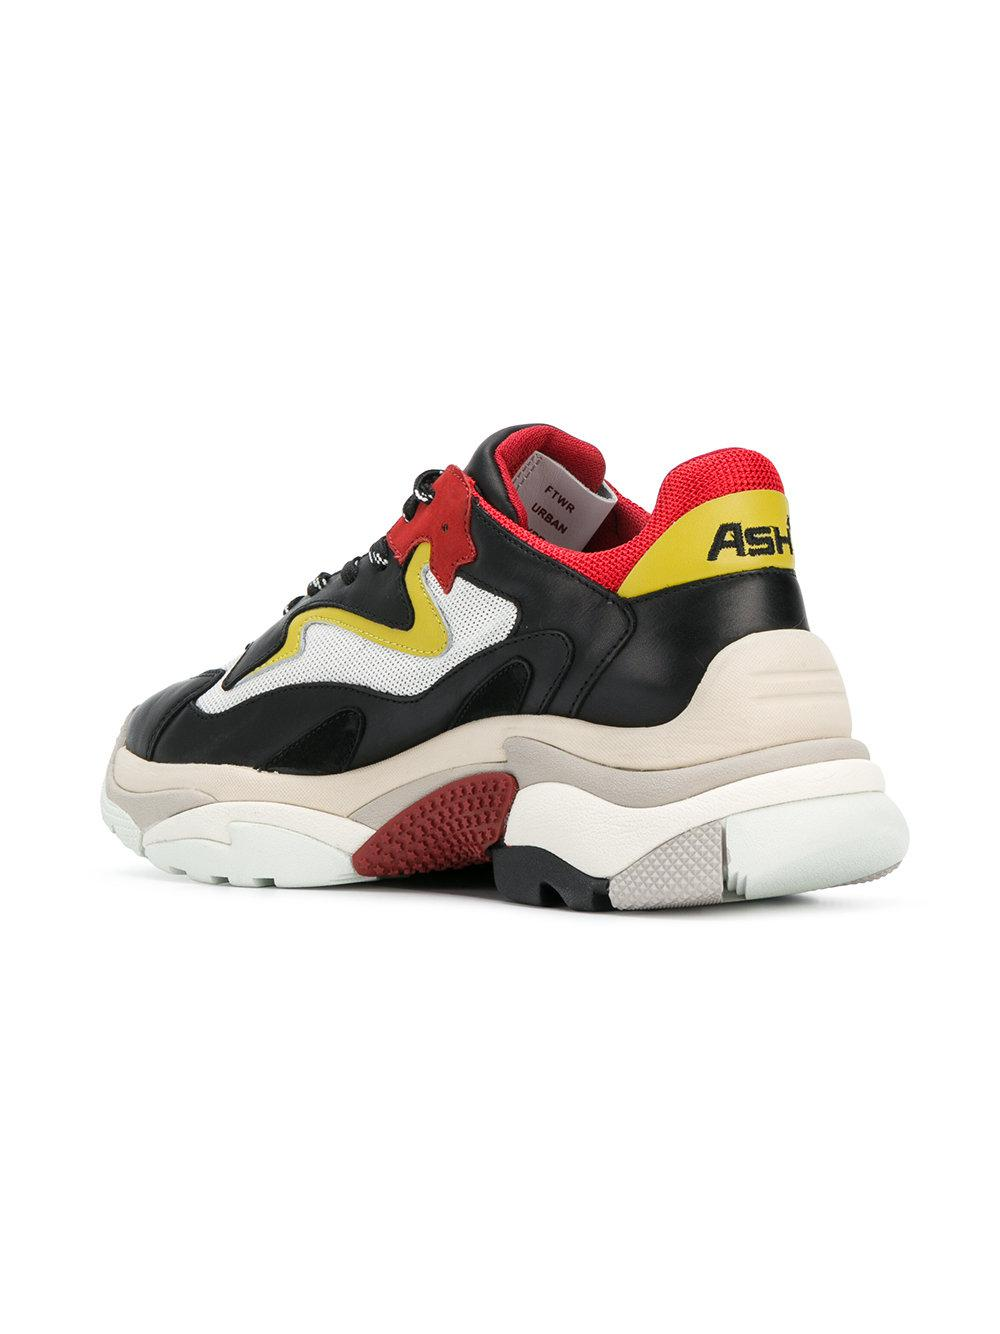 Ash Colour block Addict 05 sneakers 2018 Cheap Sale Countdown Package Sale Online Cheap Sale Top Quality Inexpensive 76tiqP0Z